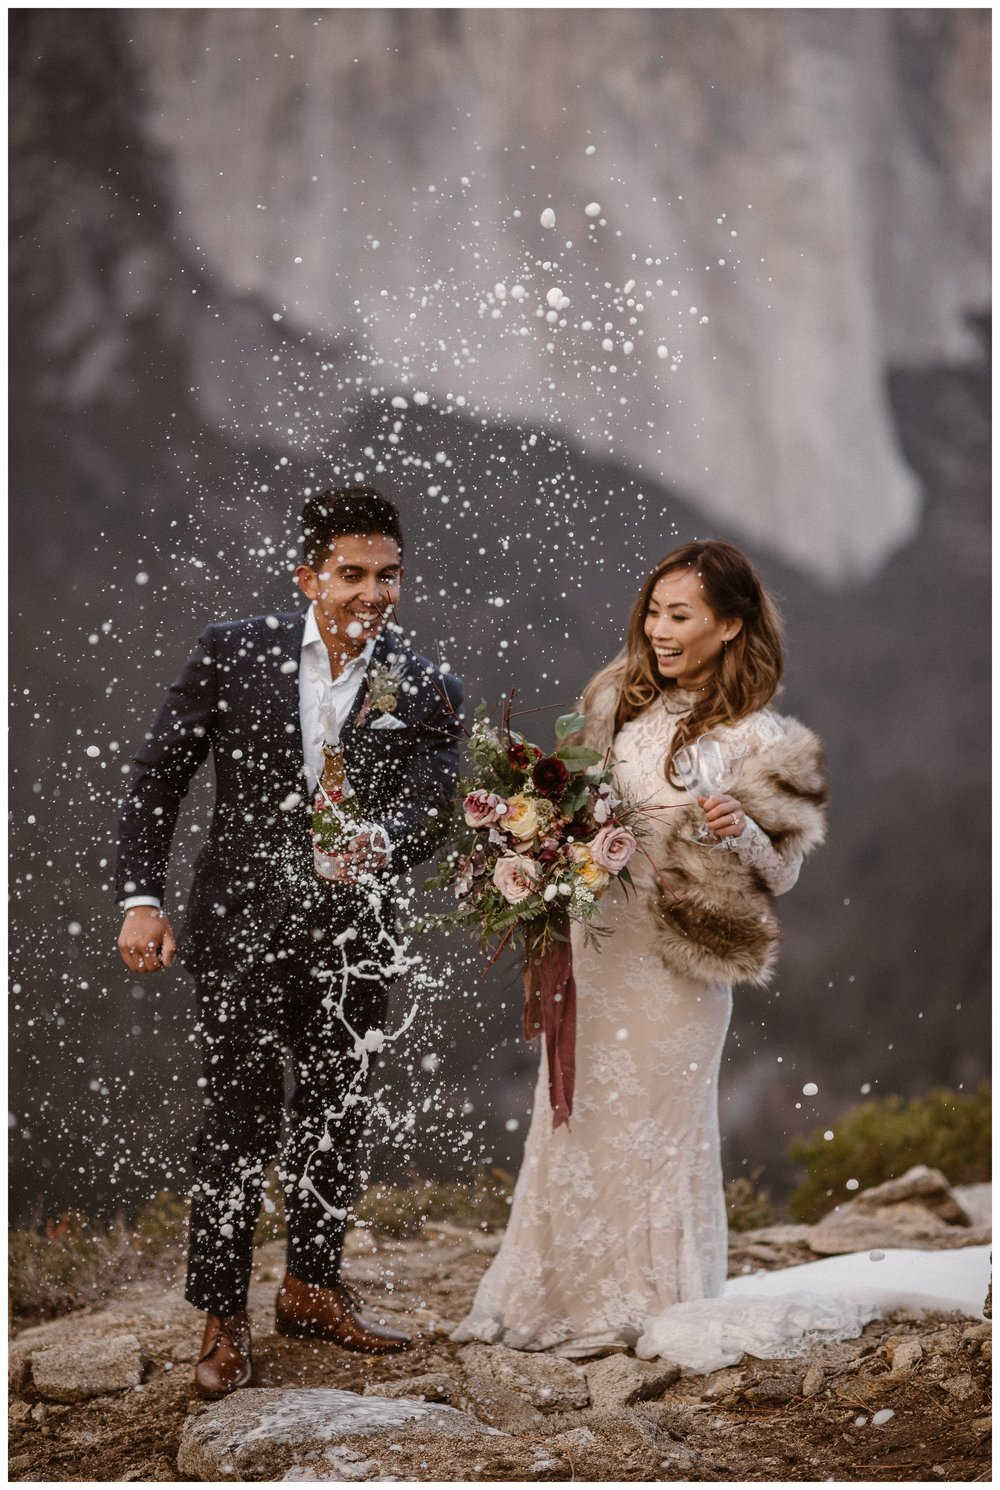 Once you've said your vows it's time to celebrate! The key to a great champagne spray is to really shake the champagne, like this couple did following their Yosemite National Park elopement ceremony! Where you elope and how you say your vows matters! Photo by Maddie Mae, Adventure Instead Elopement Photographers.